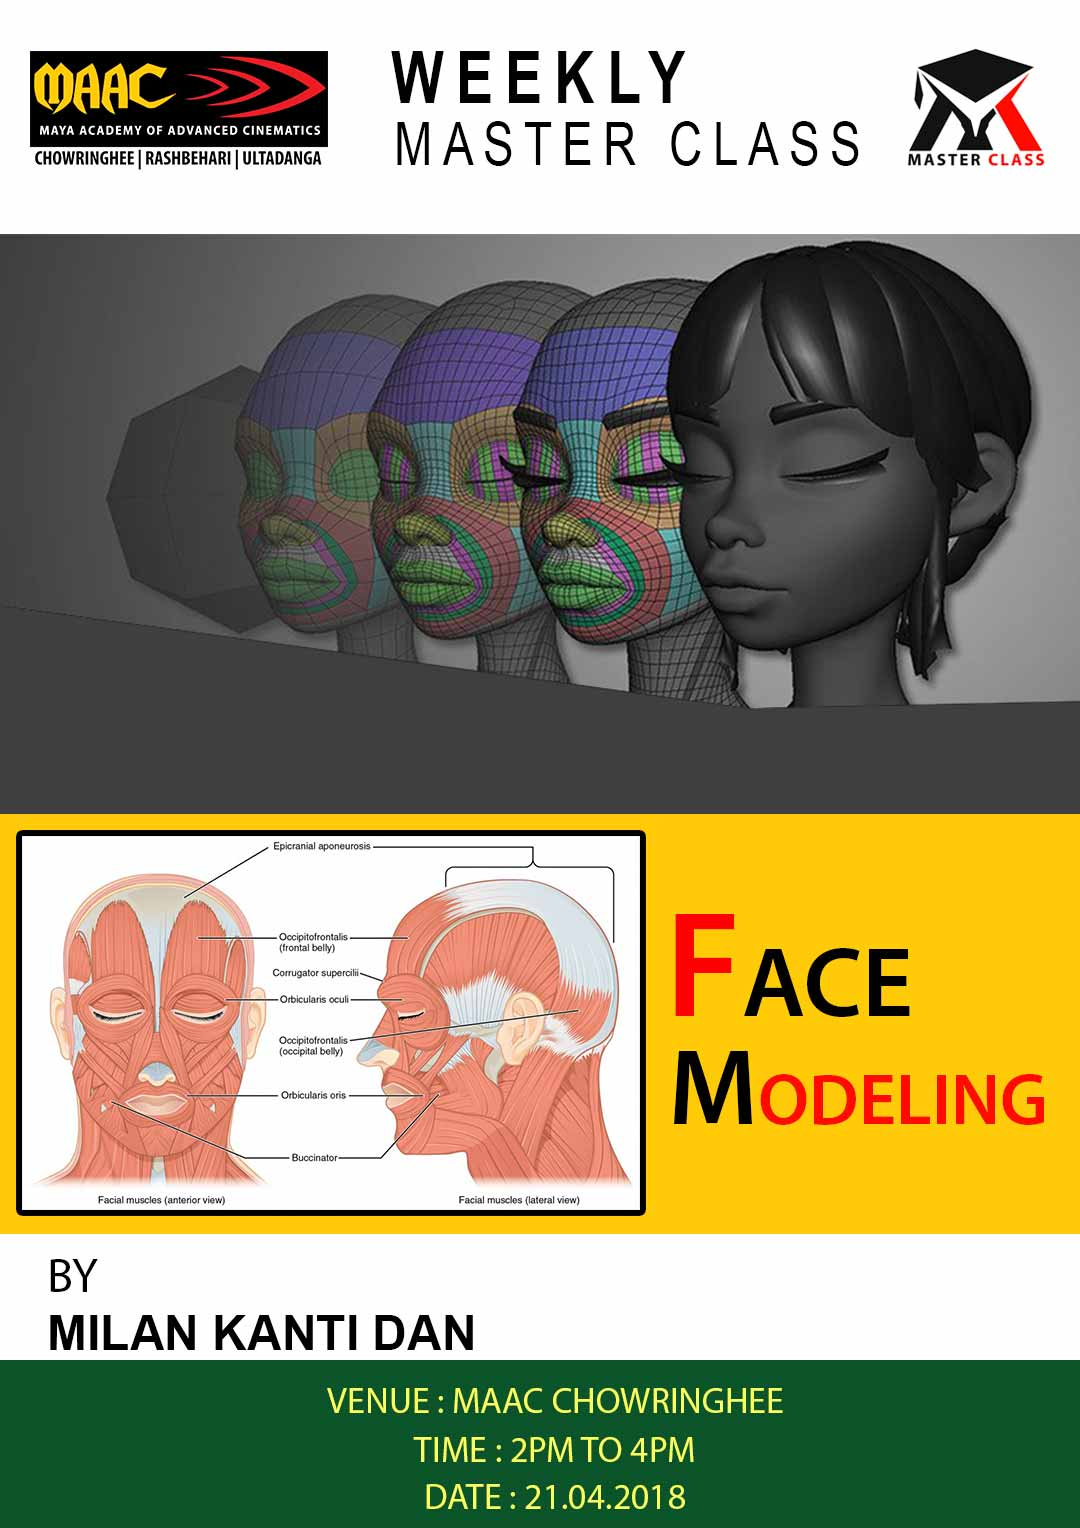 Weekly Master Class on Face Modeling